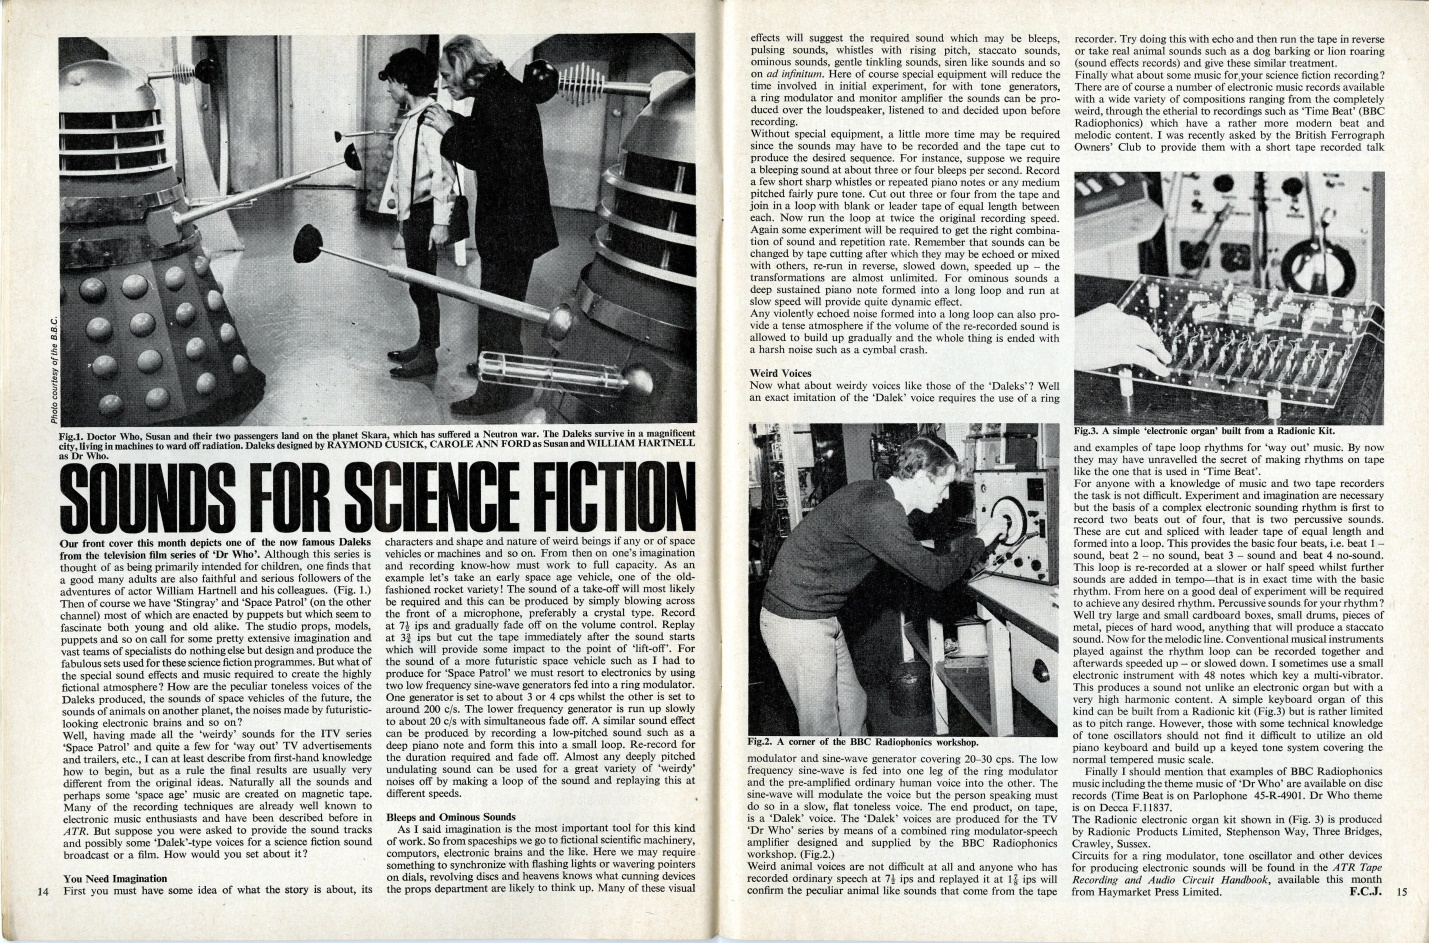 Article in Amateur Tape Recording, October 1965